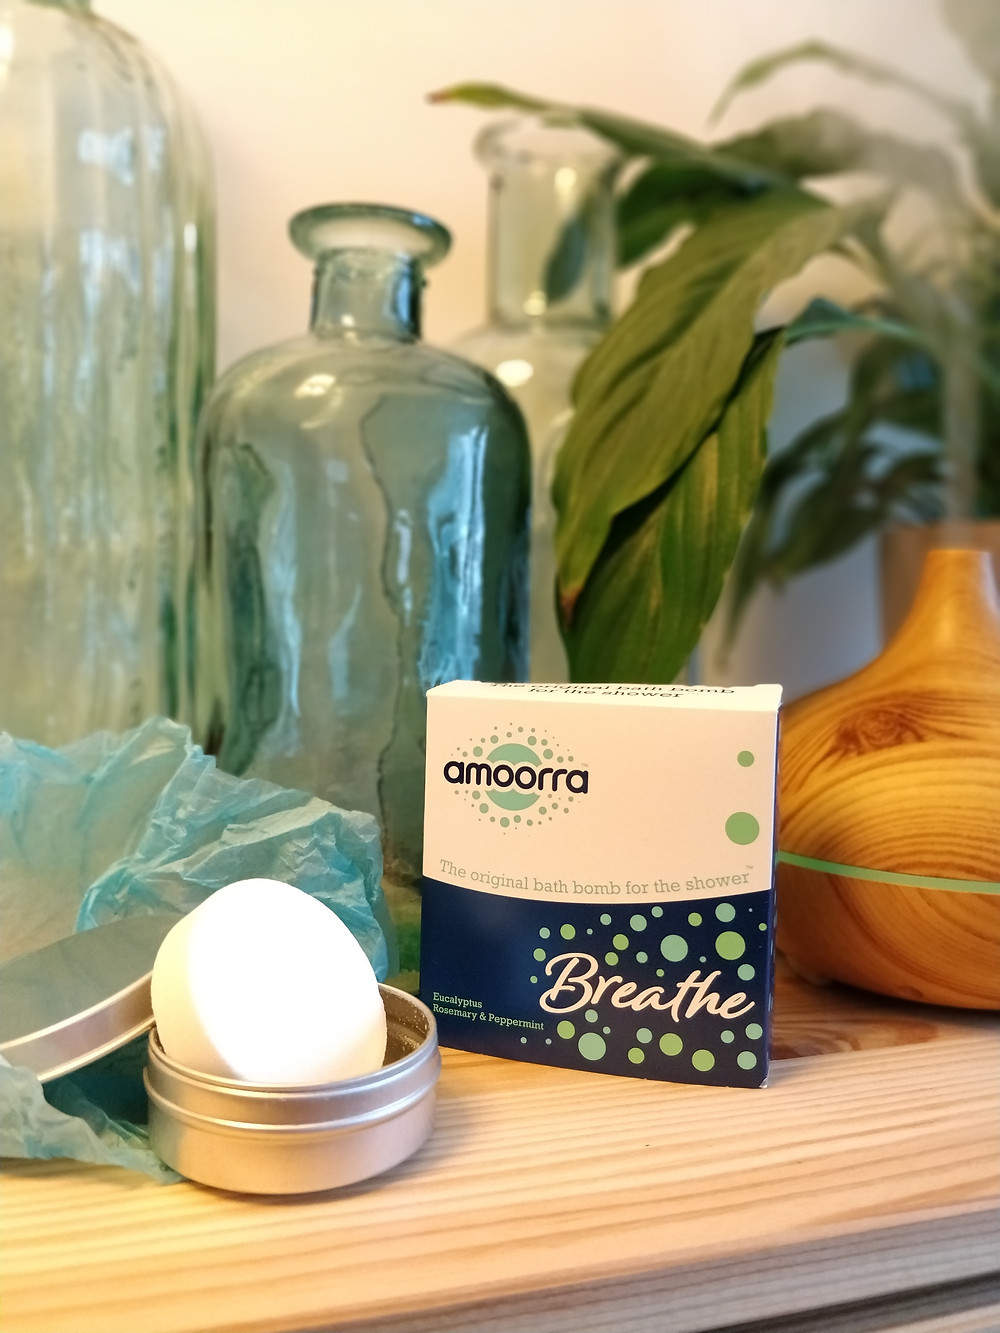 AMOORRA (SHOBU) shower bombs